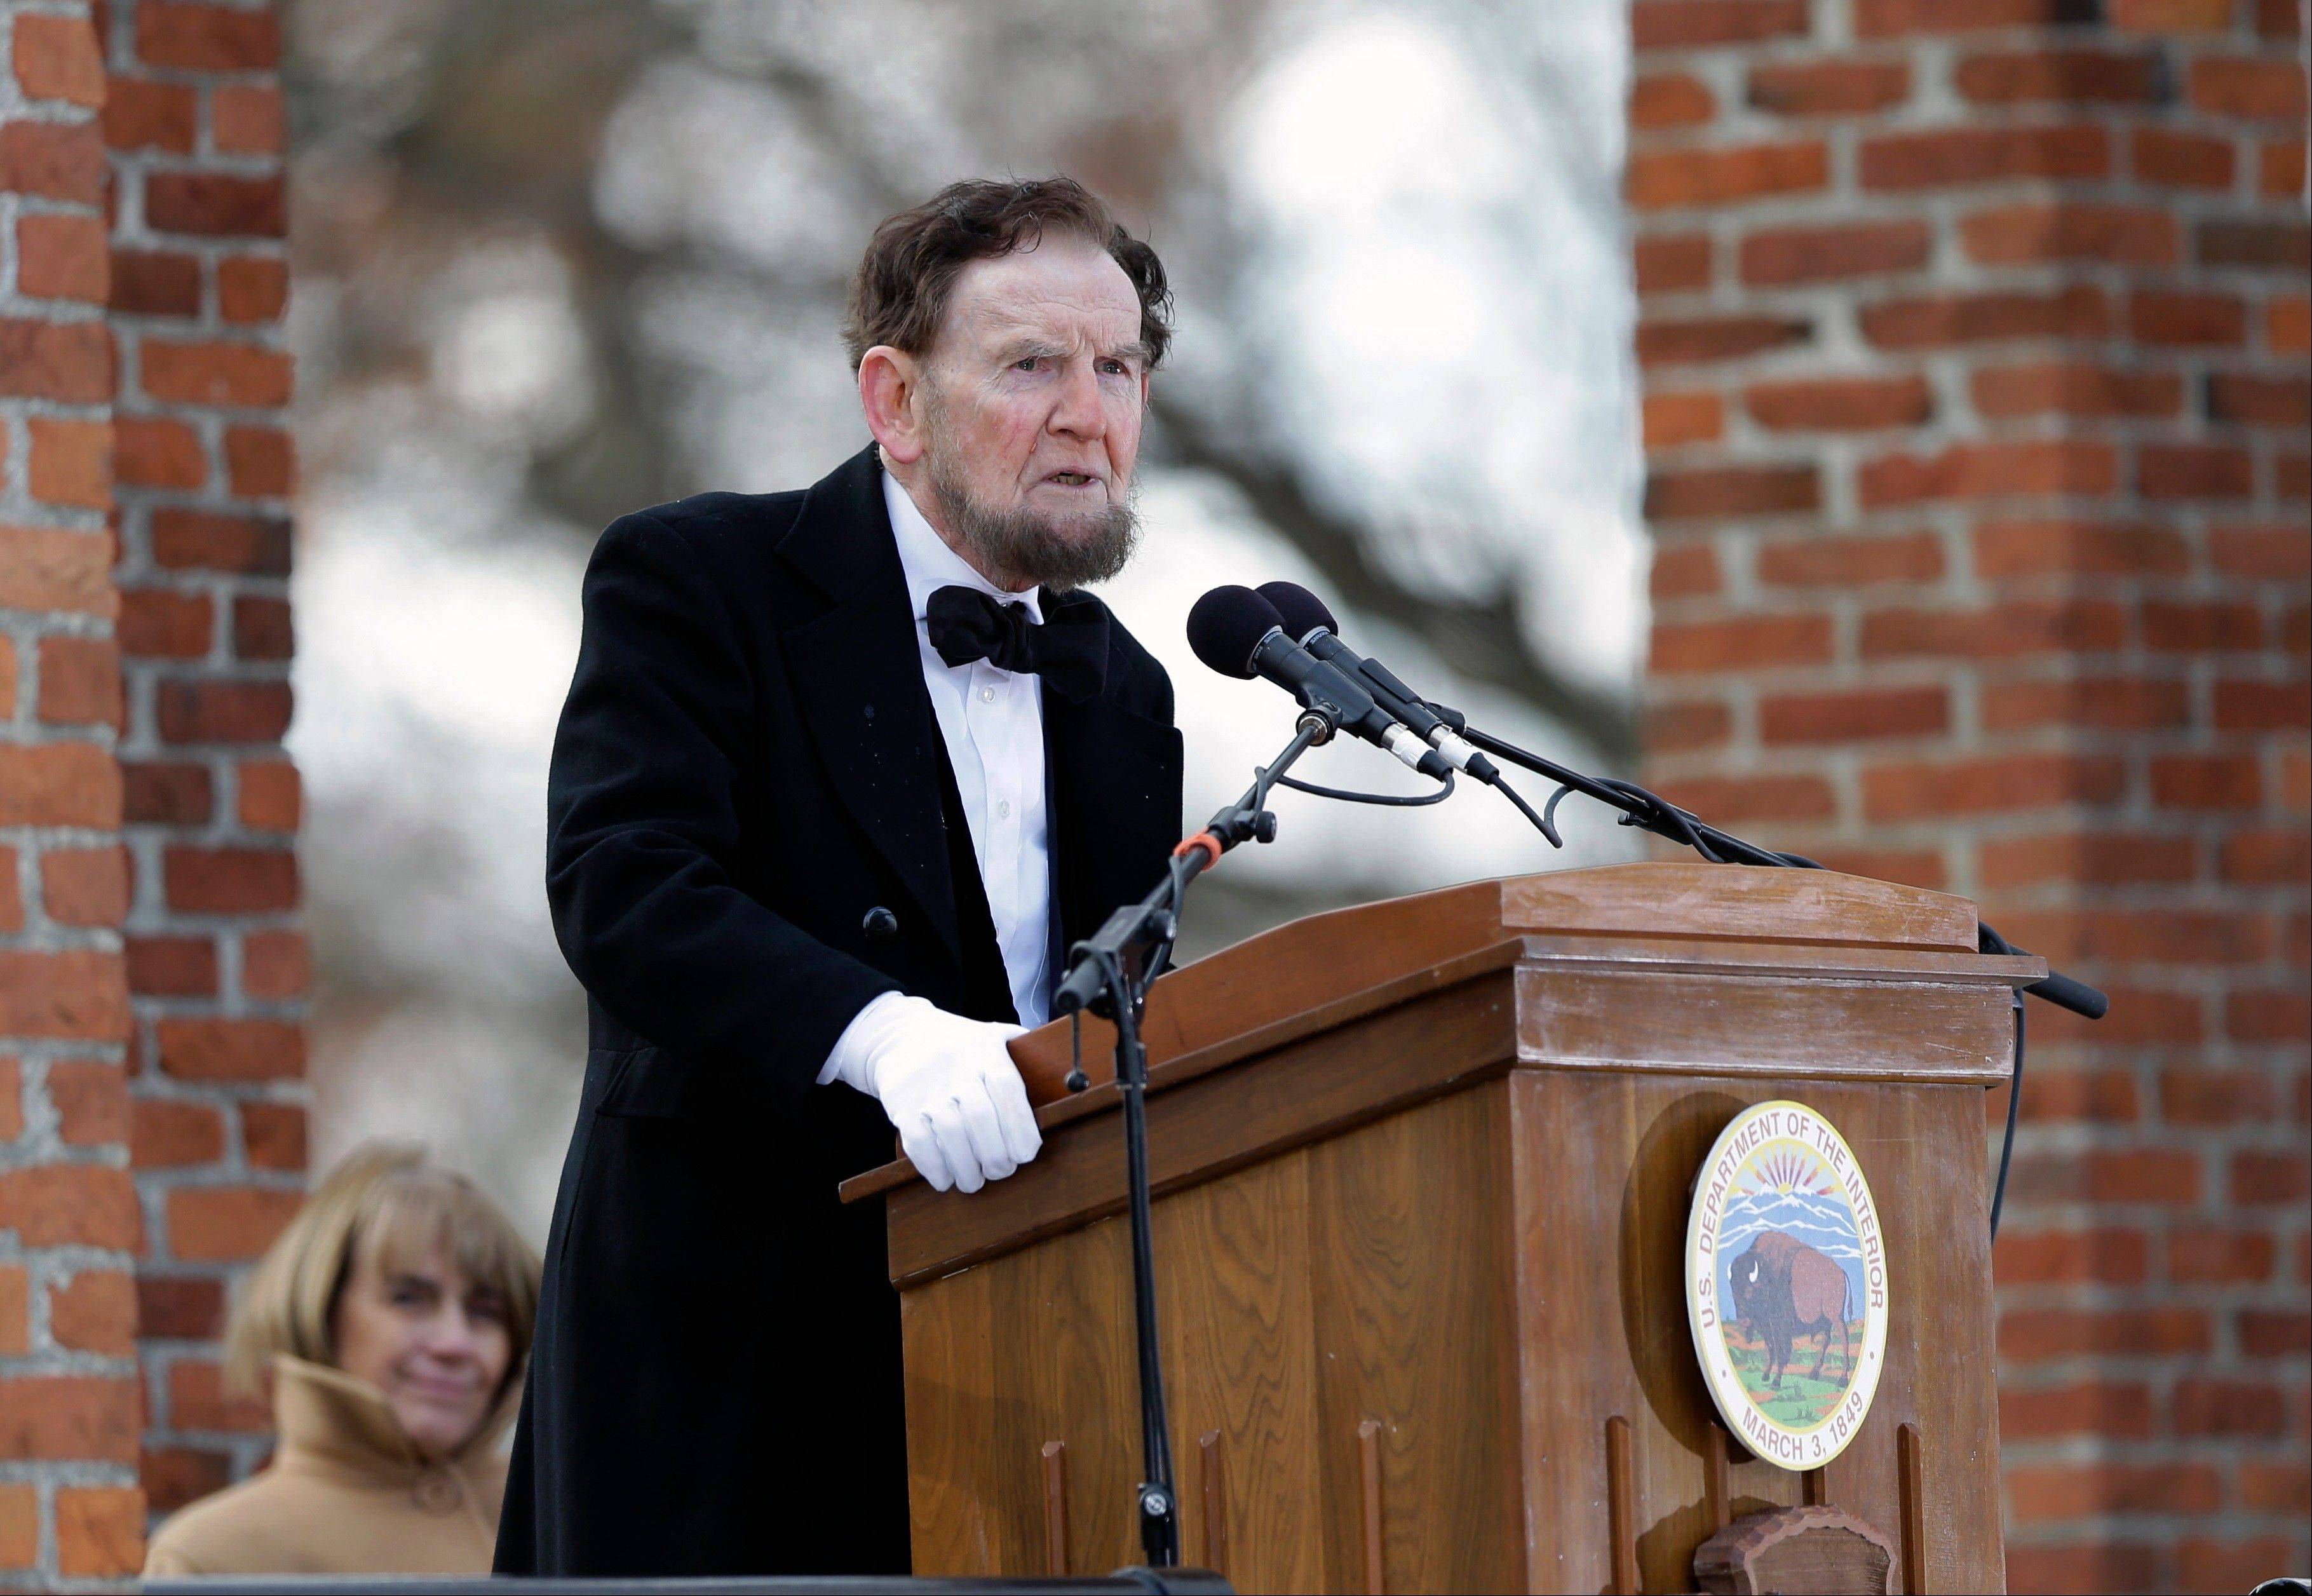 James Getty, portraying President Abraham Lincoln, recites the Gettysburg Address during a ceremony commemorating the 150th anniversary of the dedication of the Soldiers' National Cemetery and the historic speech, Tuesday Nov. 19, 2013, in Gettysburg, Pa.